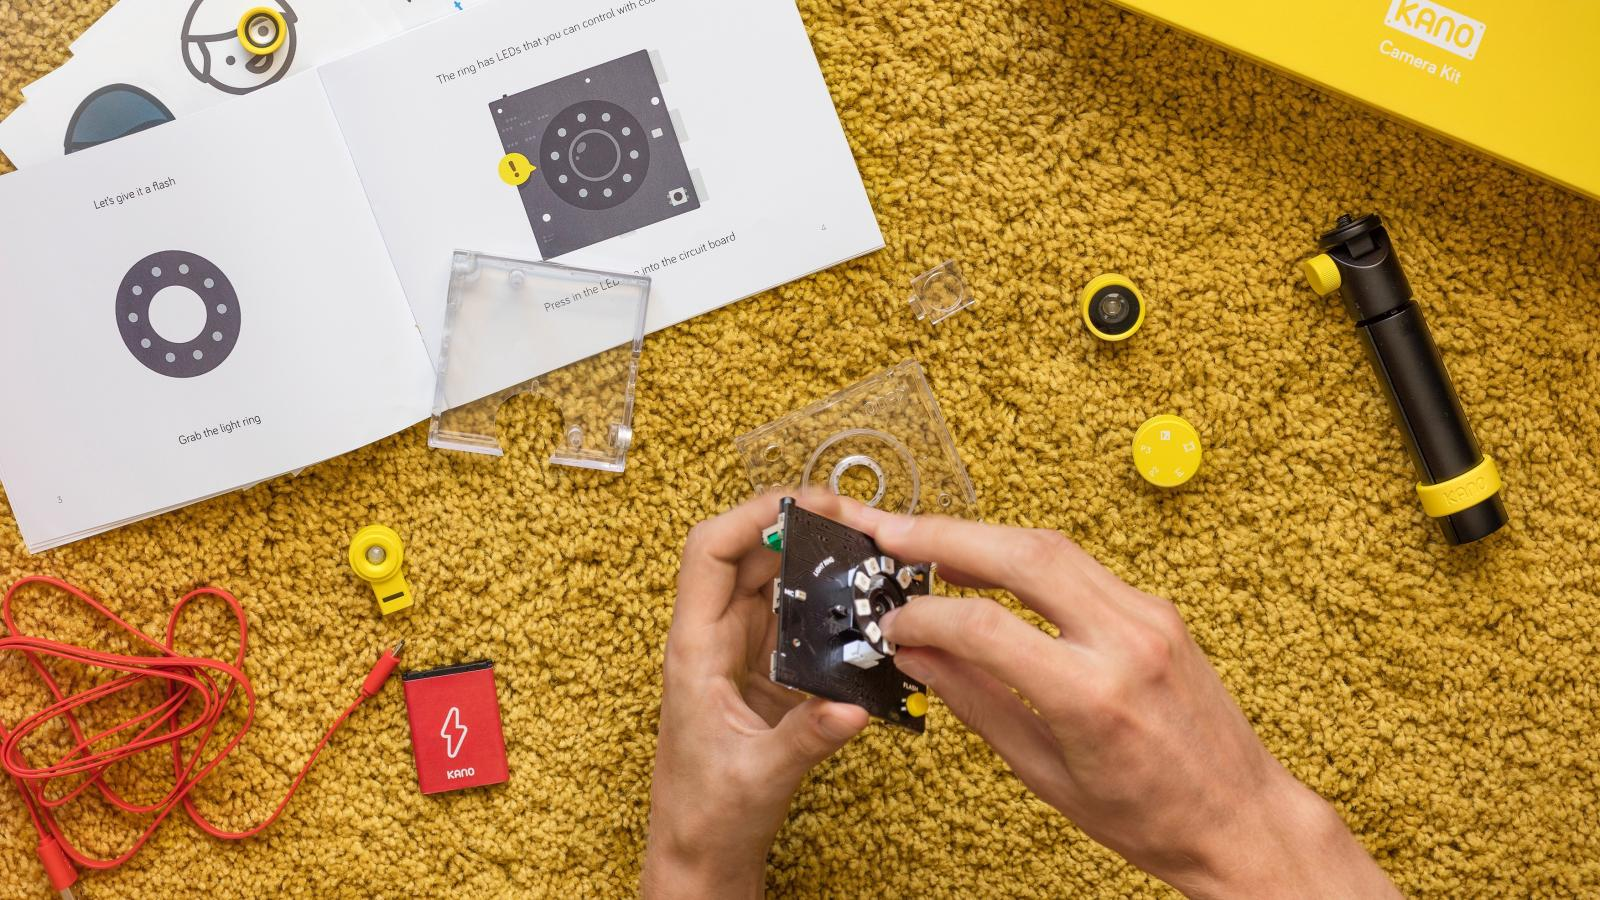 Computer Kit Maker Kano Is Releasing Diy Camera Speaker And Pixel The Circuit Above A Light Sensor That Means Must Shine Into Kits Quartz